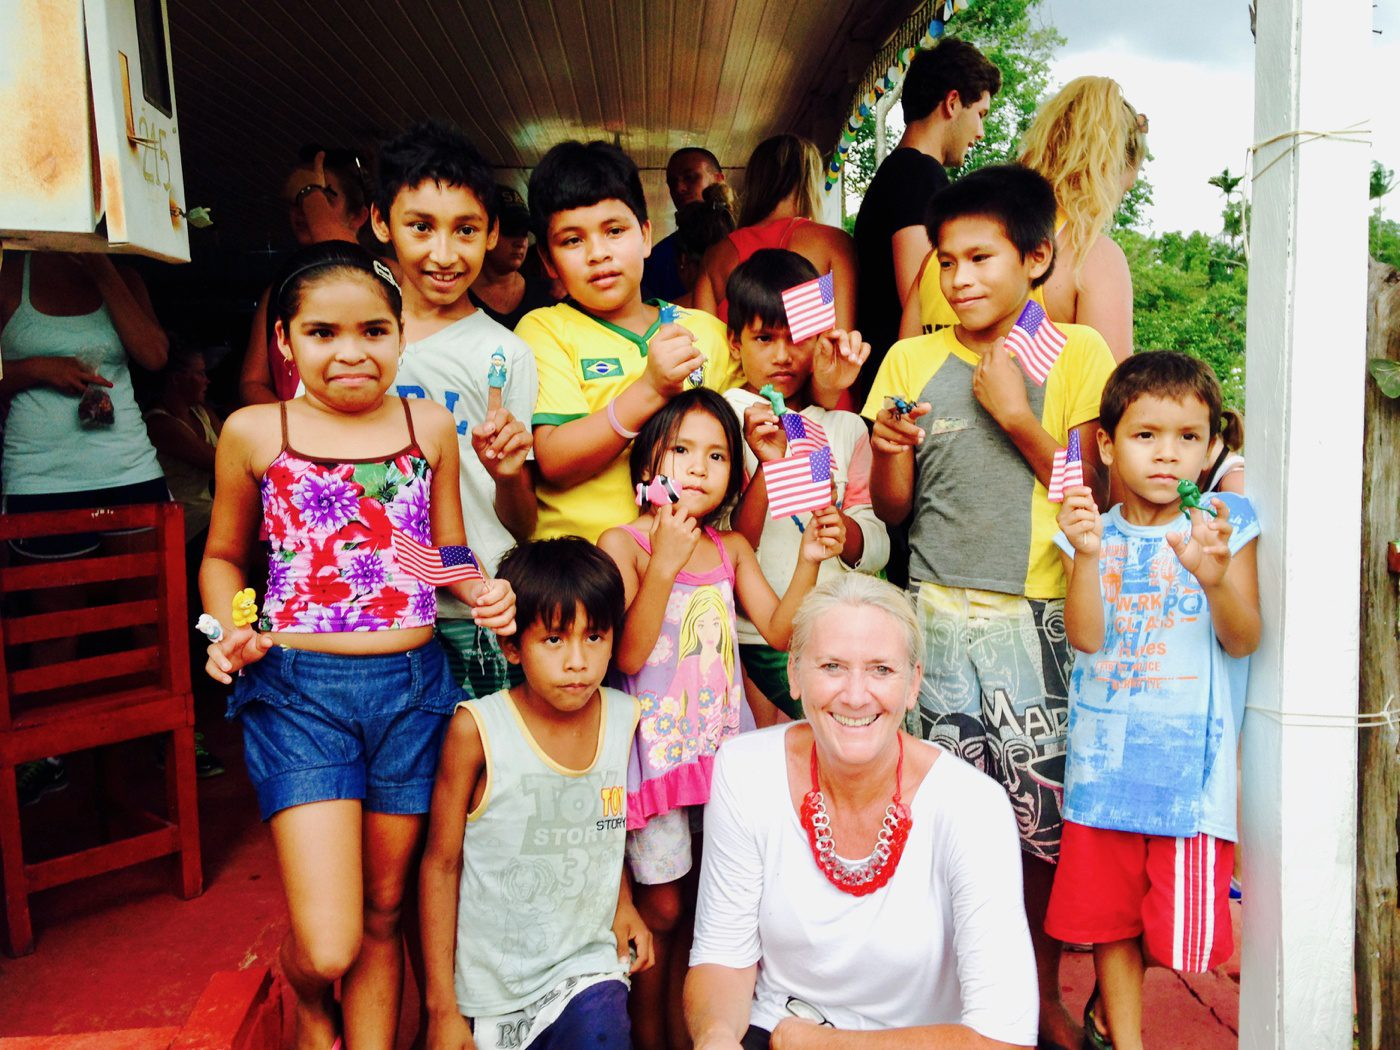 Education author and global travel expert, volunteering by the Amazon river in Brazil.